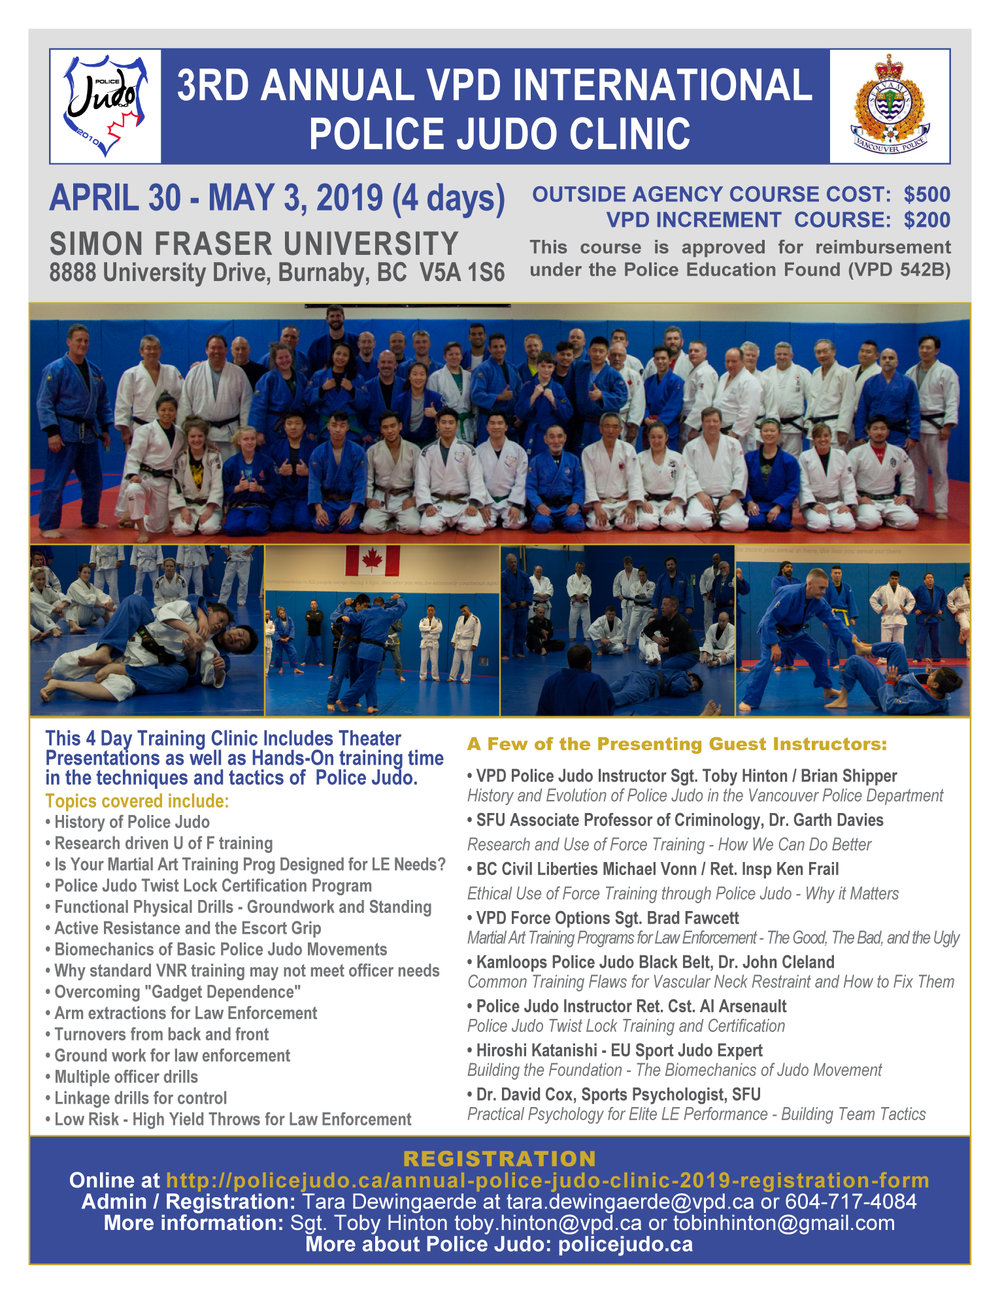 3rd-Annual-Police-Judo-Clinic---2019---updated.jpg